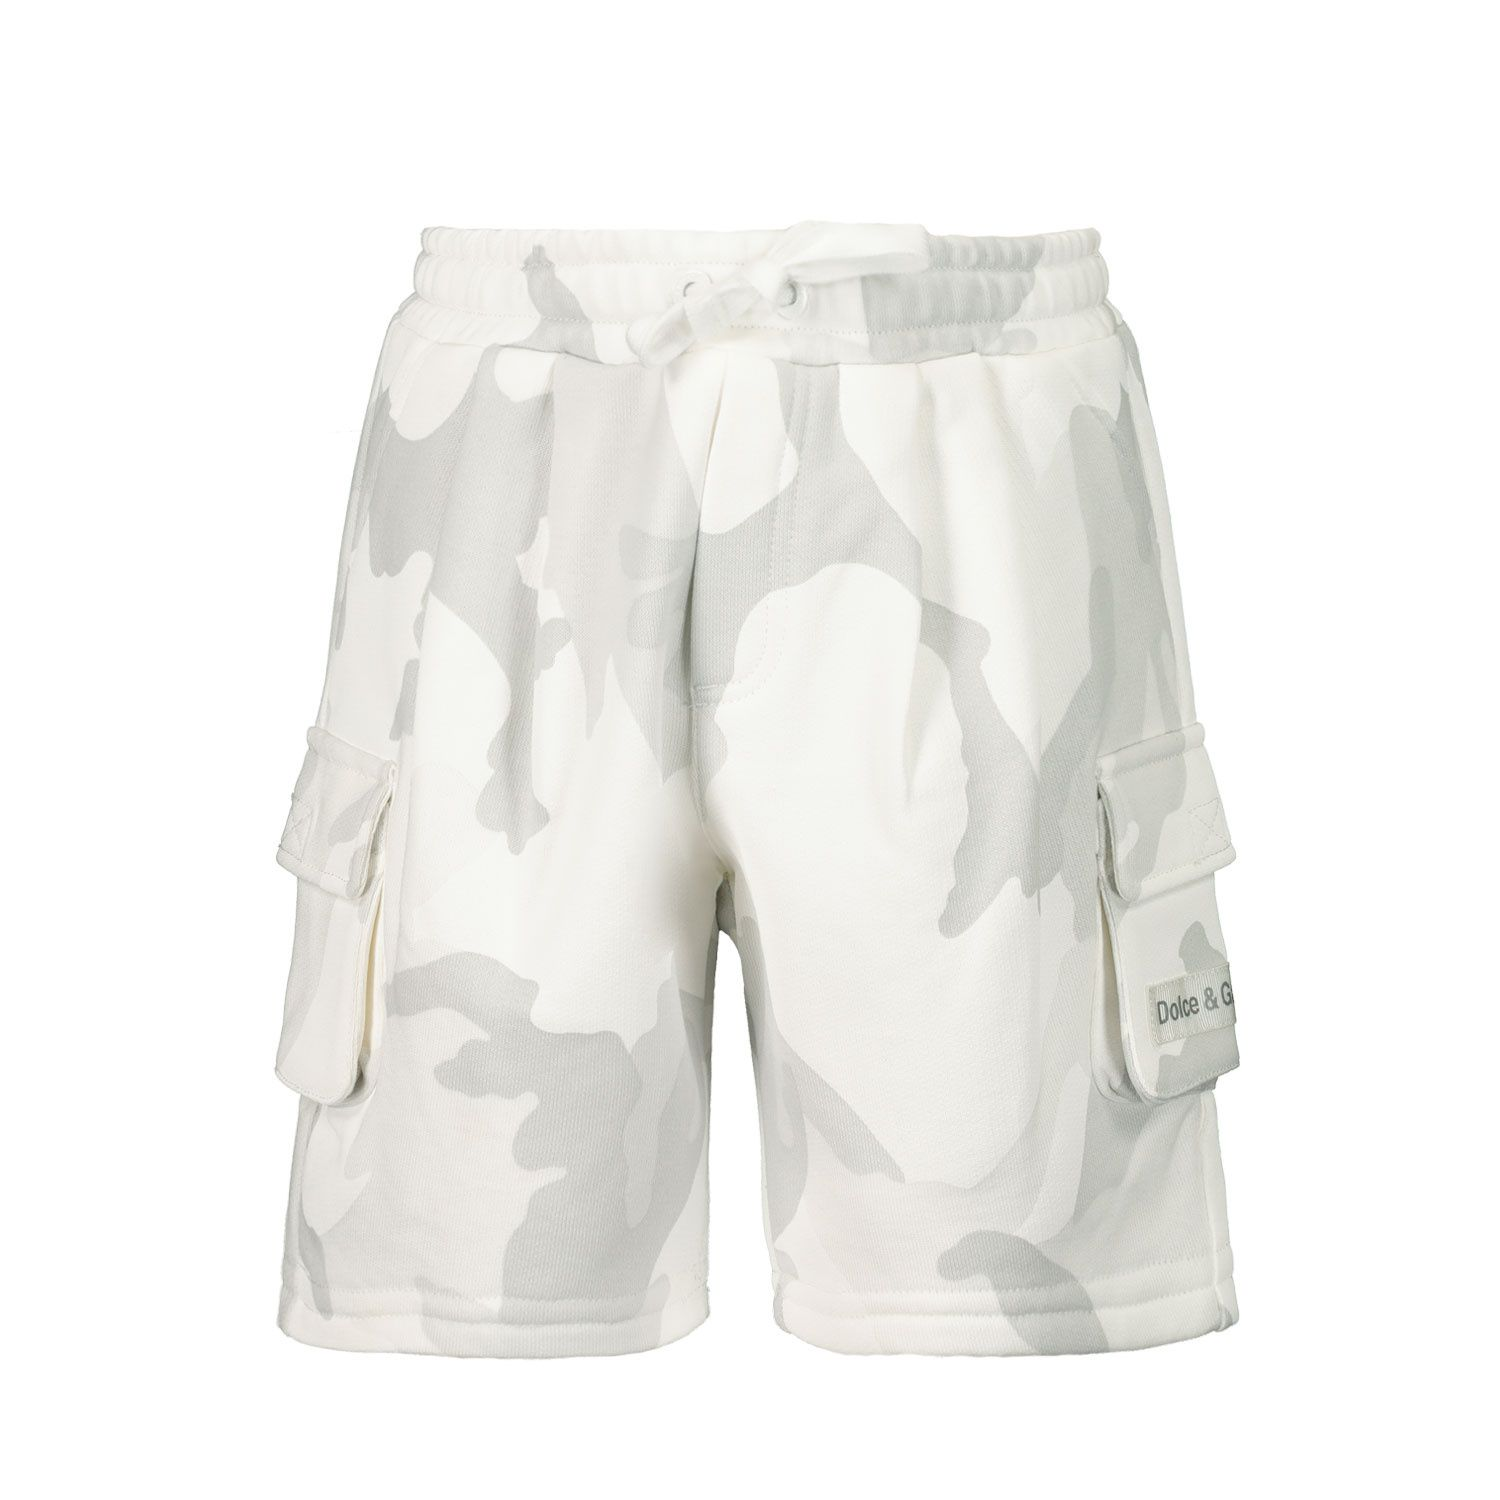 Picture of Dolce & Gabbana L1JQI3 G7YIT baby shorts light gray